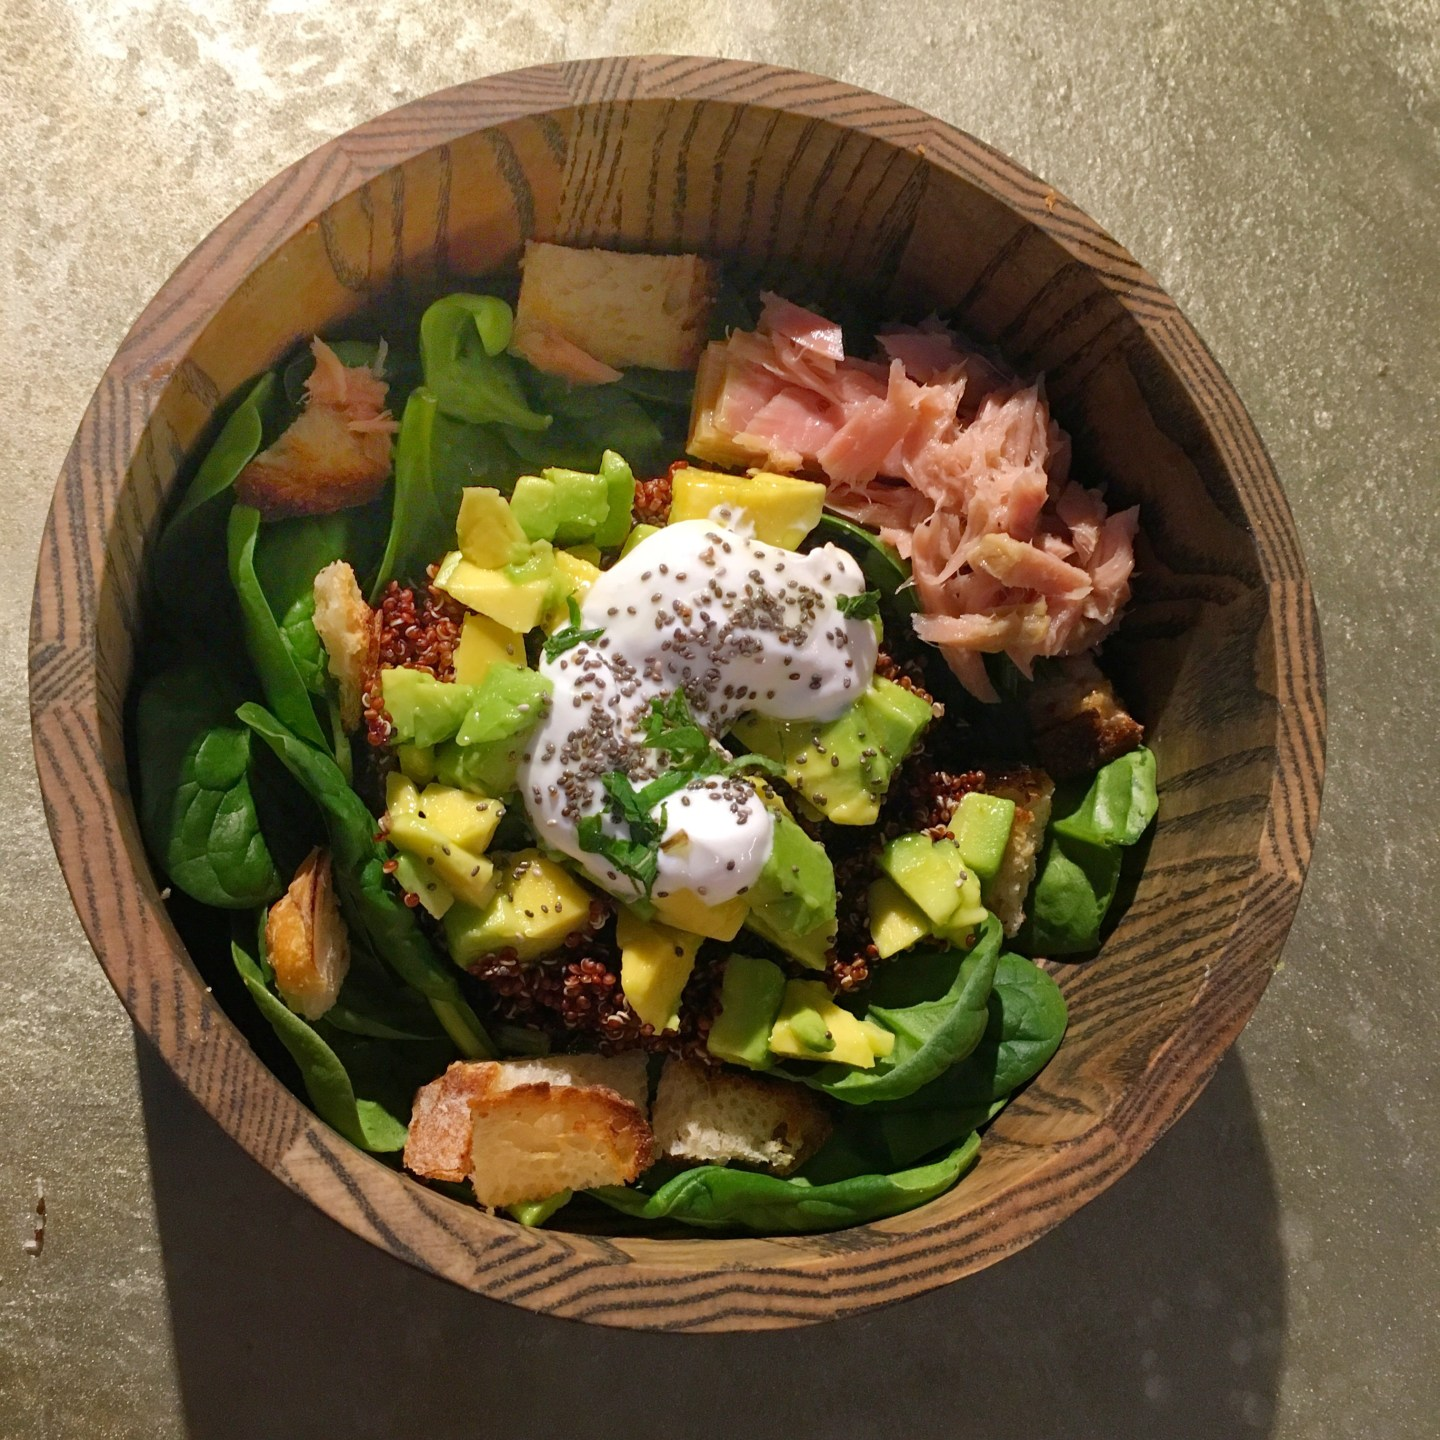 Top 5 Healthy Miami Restaurants for Breakfast Lunch and Dinner